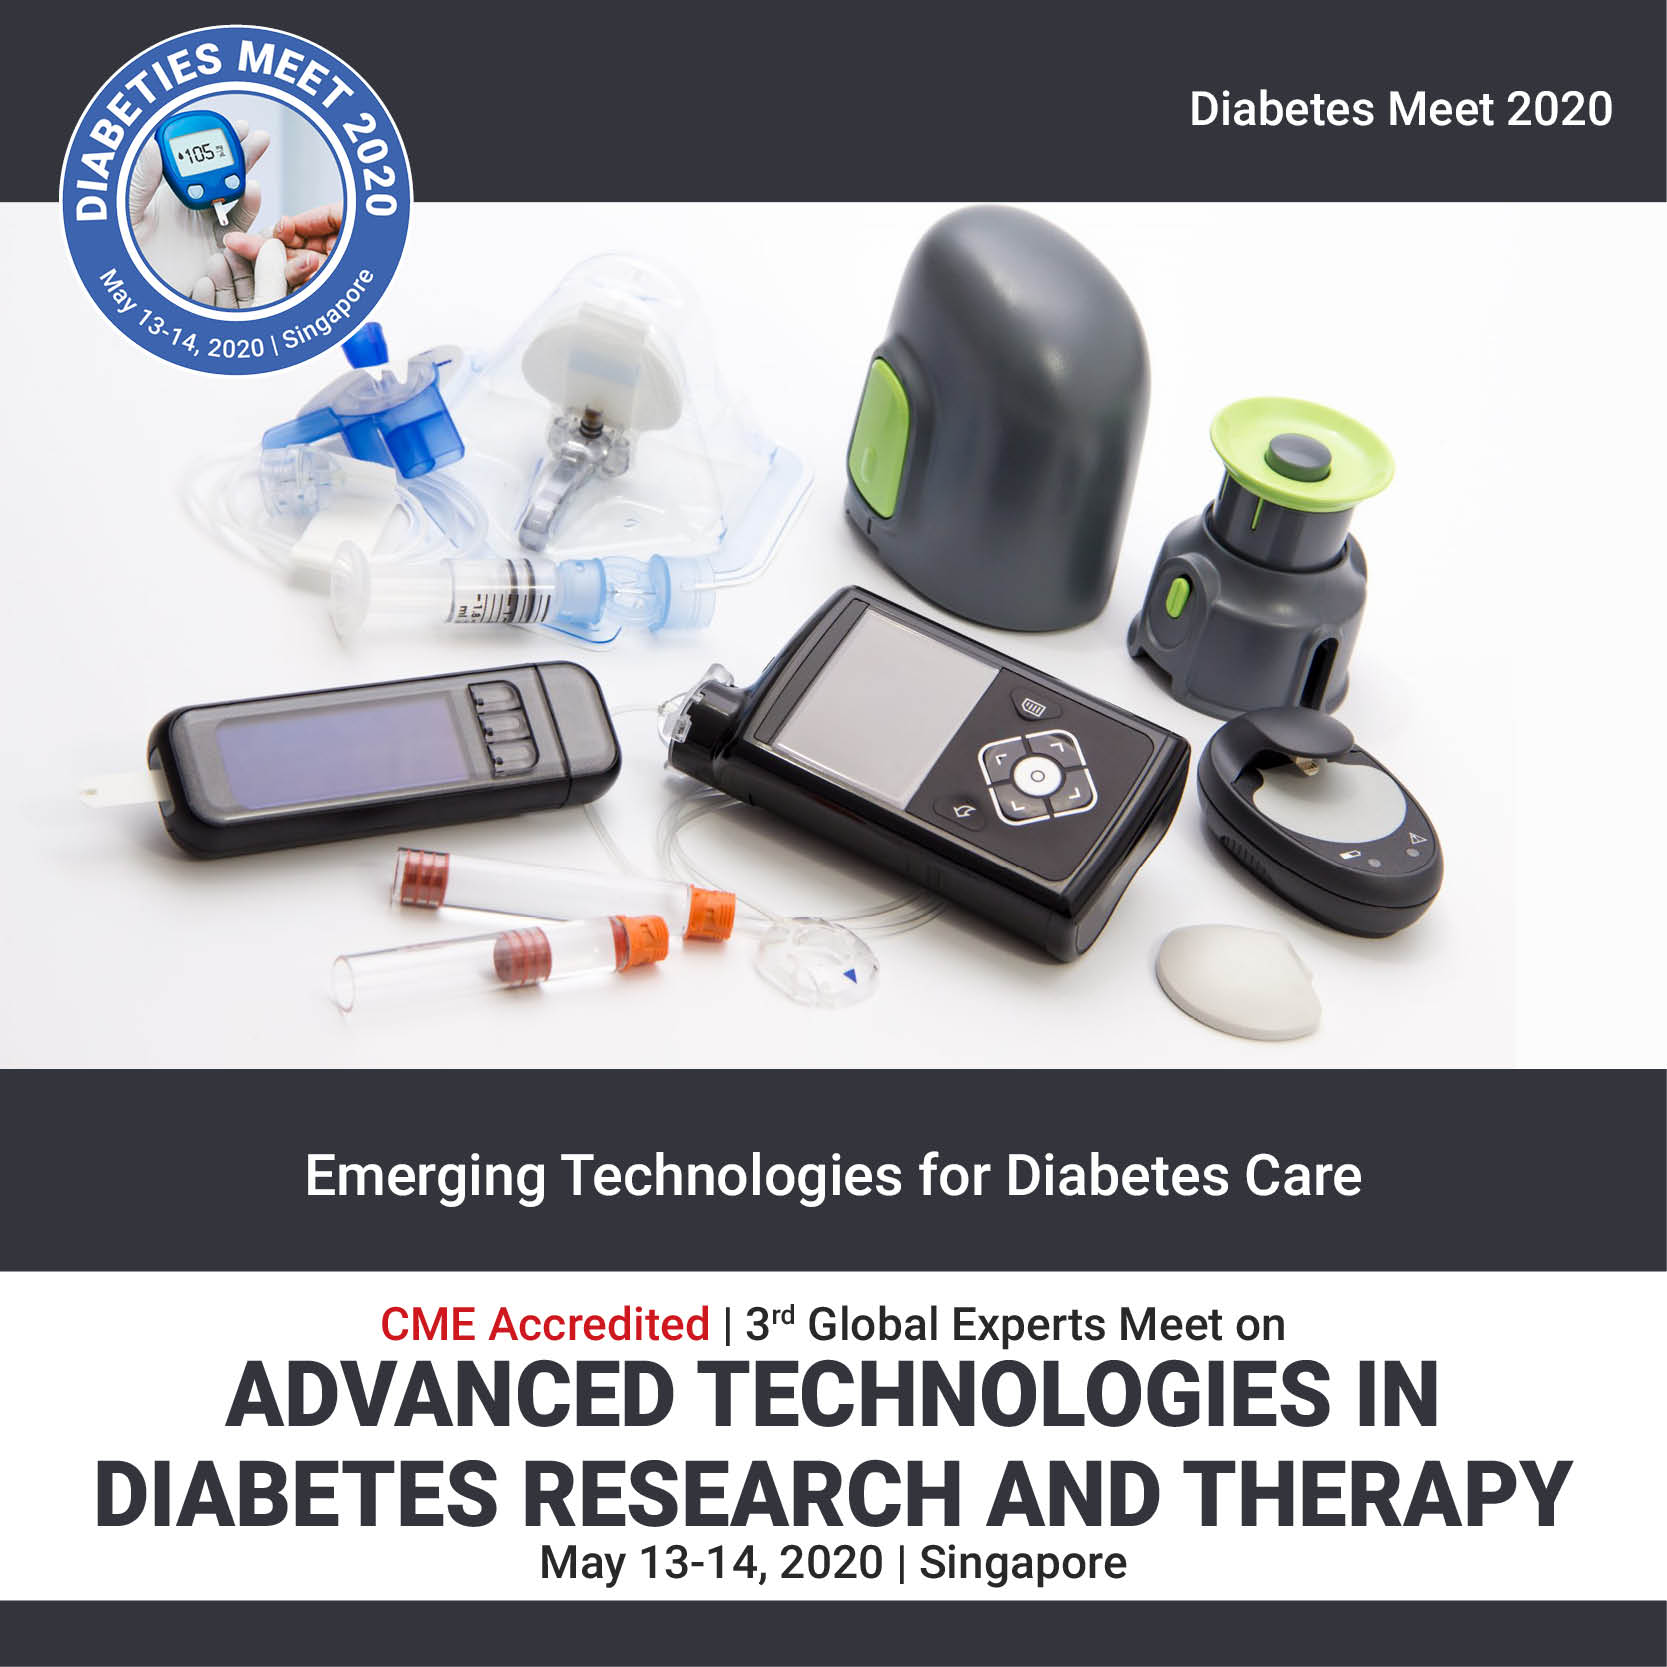 Emerging Technologies for Diabetes Care Photo